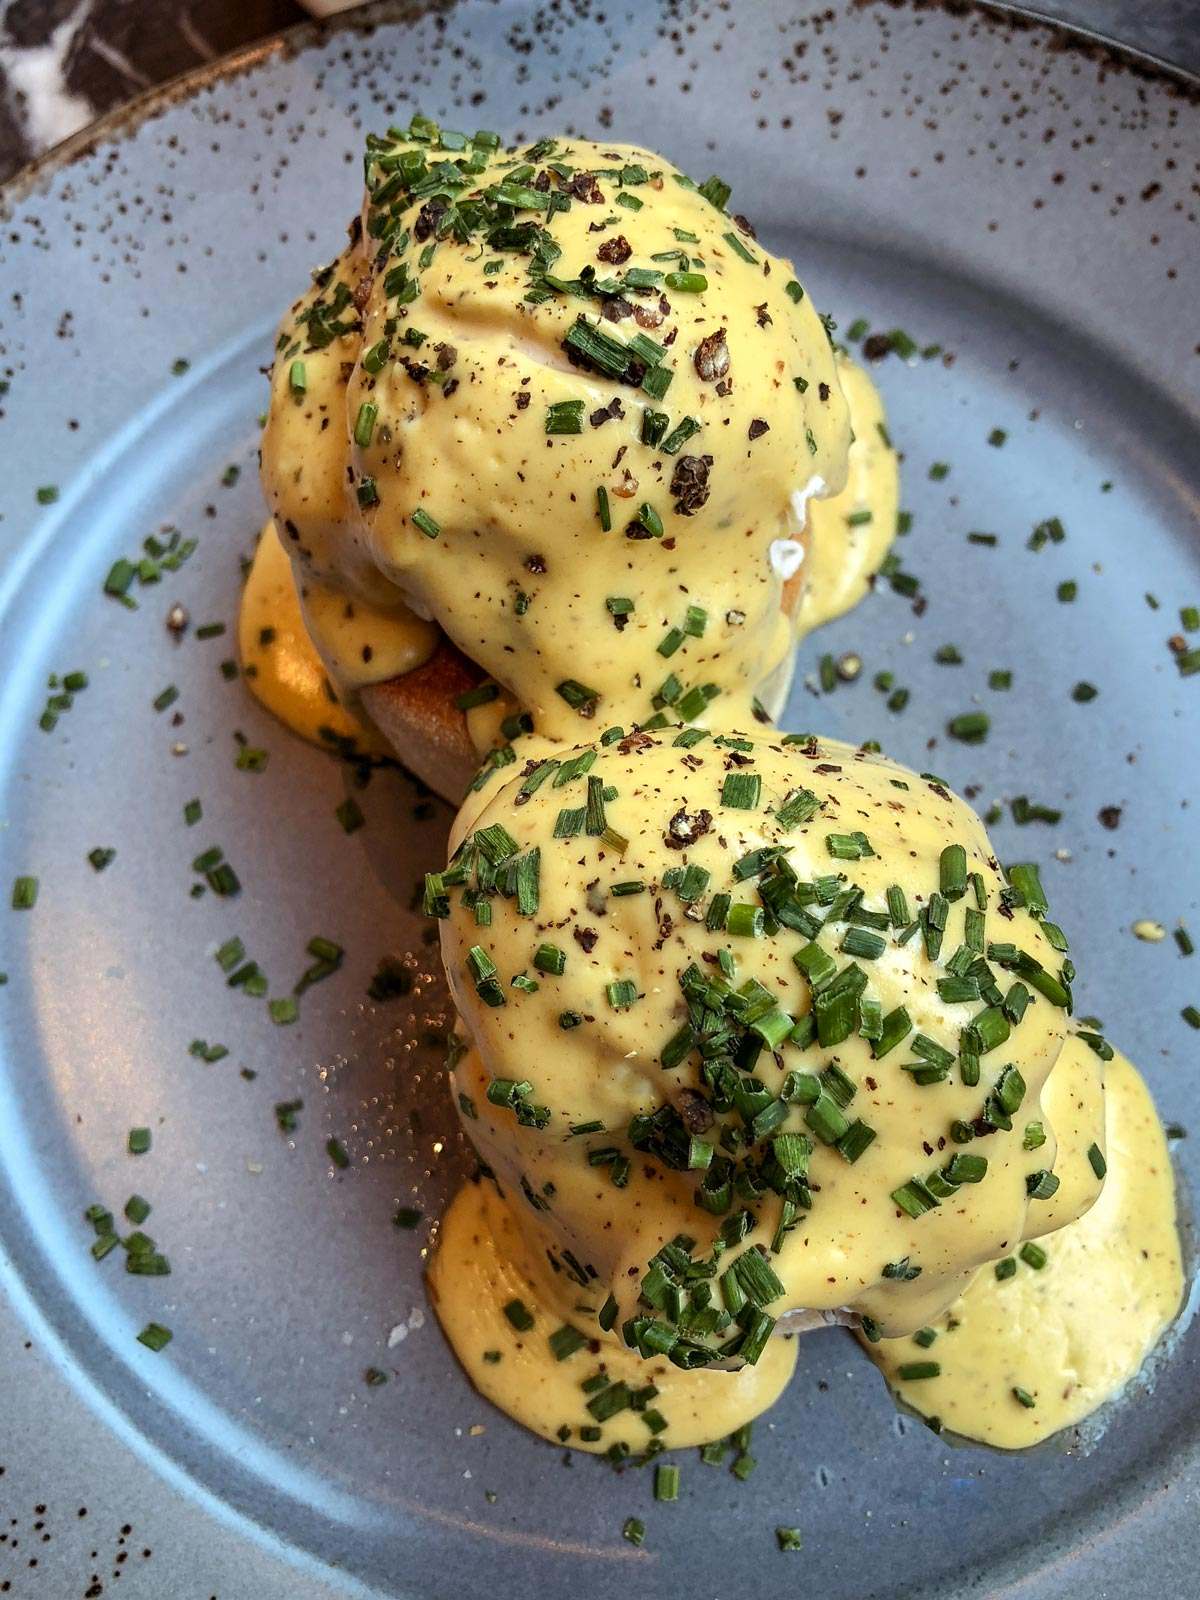 39 Steps Coffee Haus. Eggs with hollandaise sauce on English Muffins.